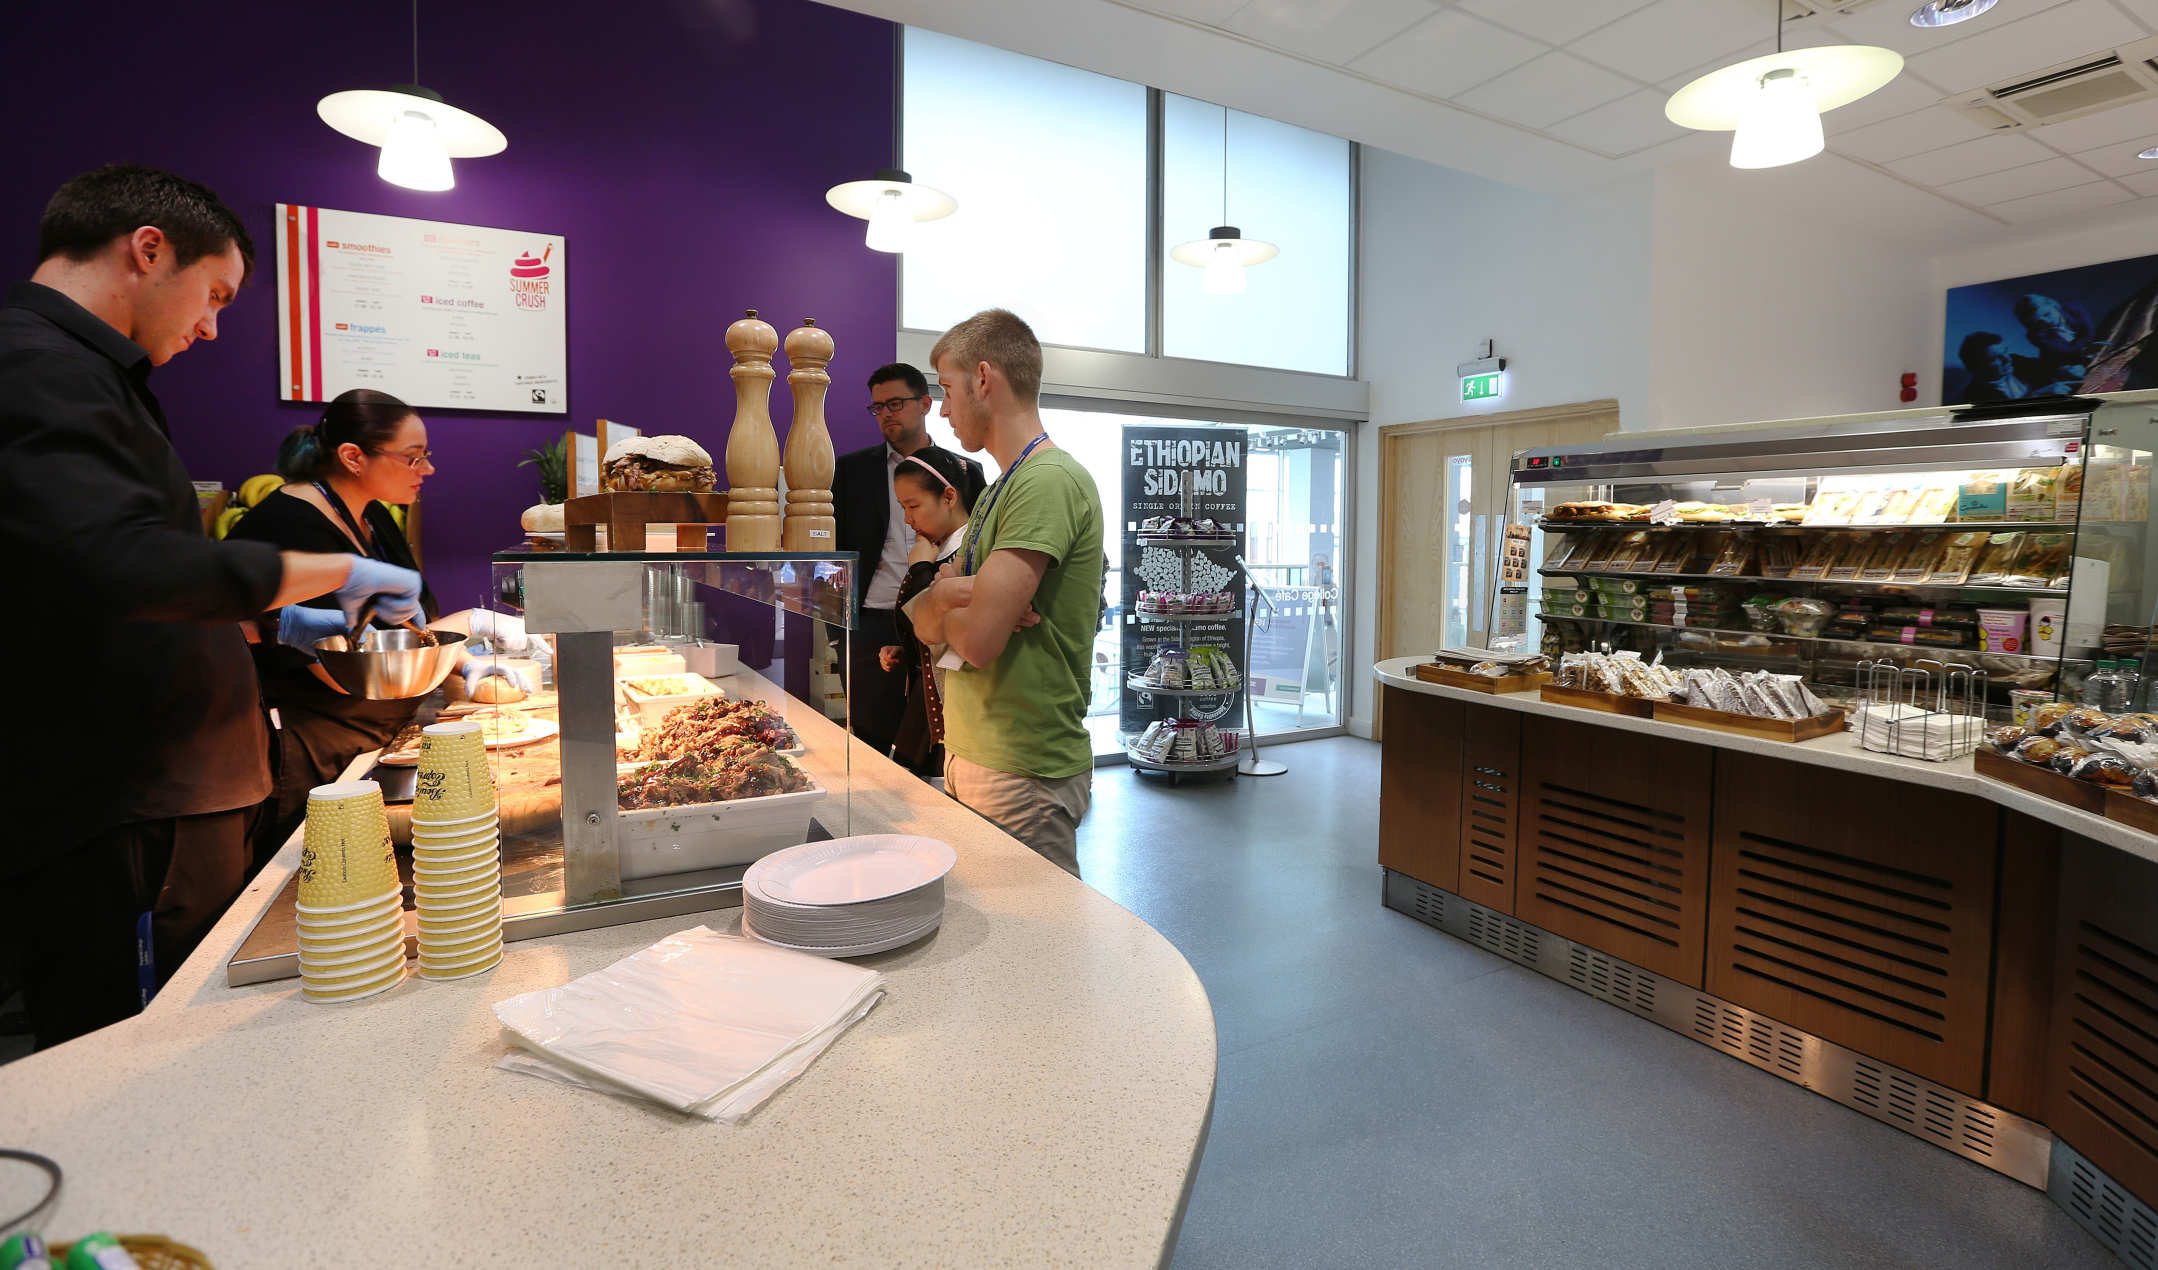 College Cafe Administration And Support Services